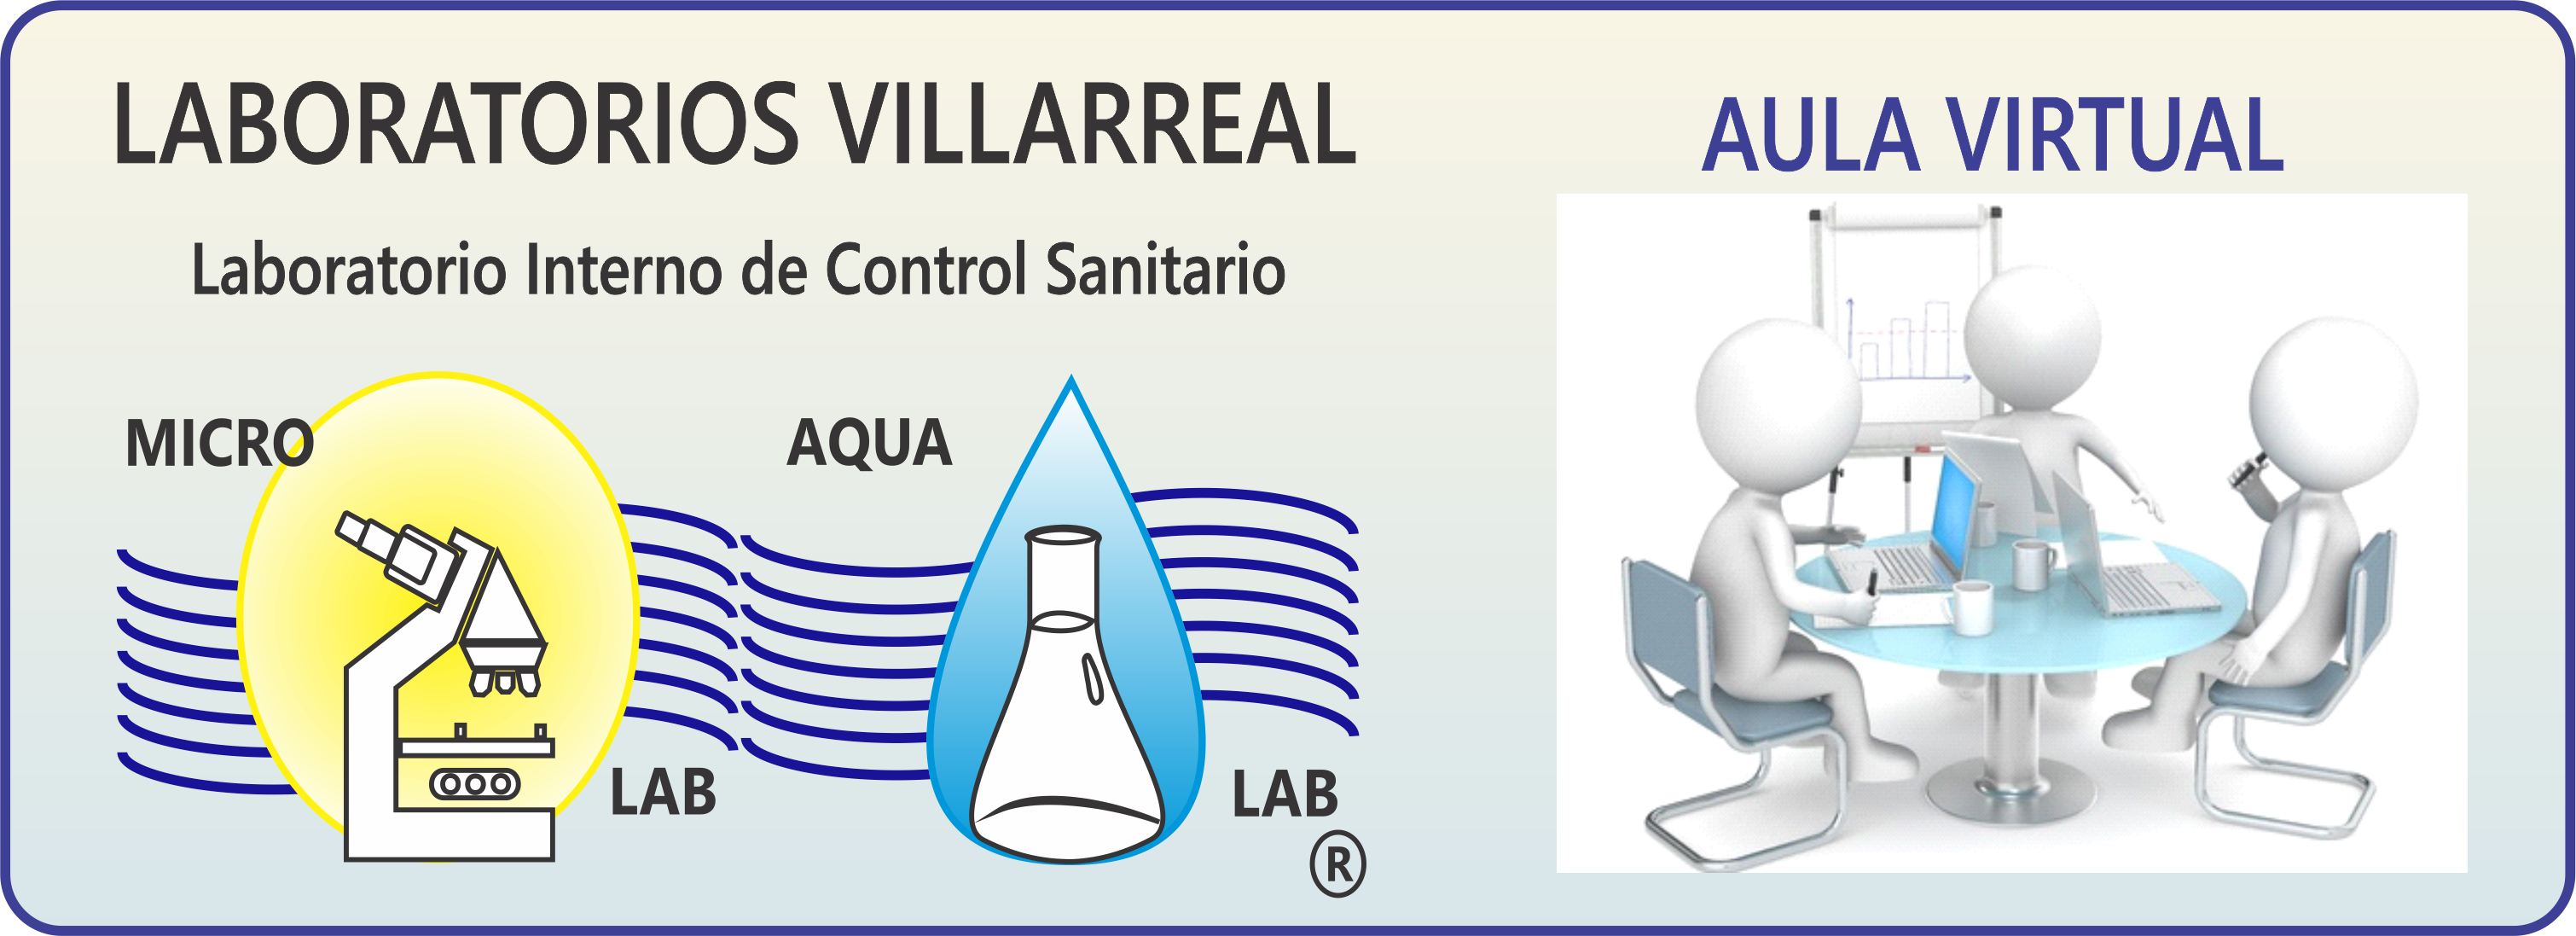 Aula Virtual Laboratorios en Higiene Villarreal